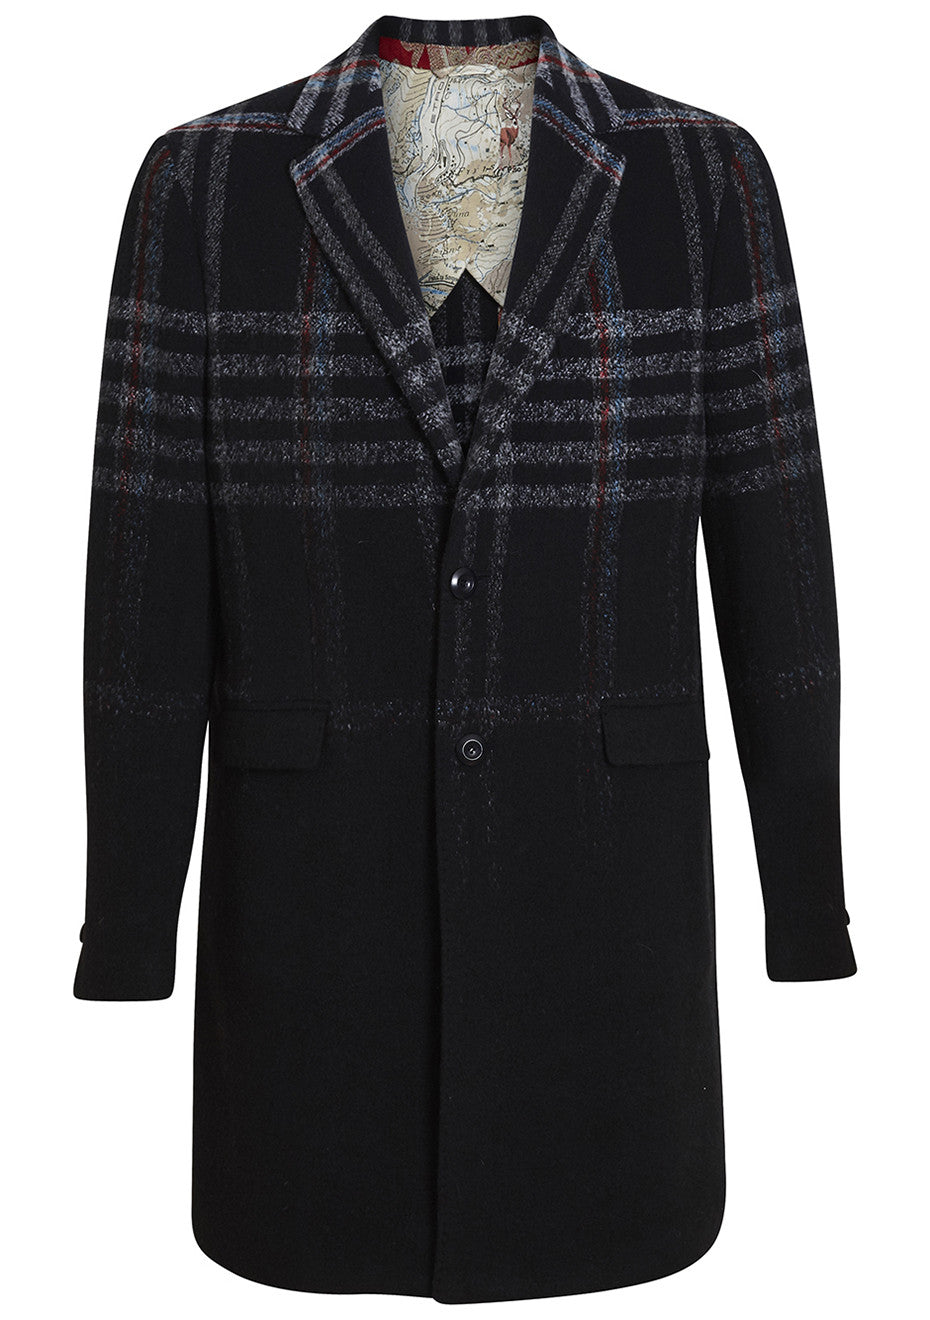 Dégradé Check Wool Coat